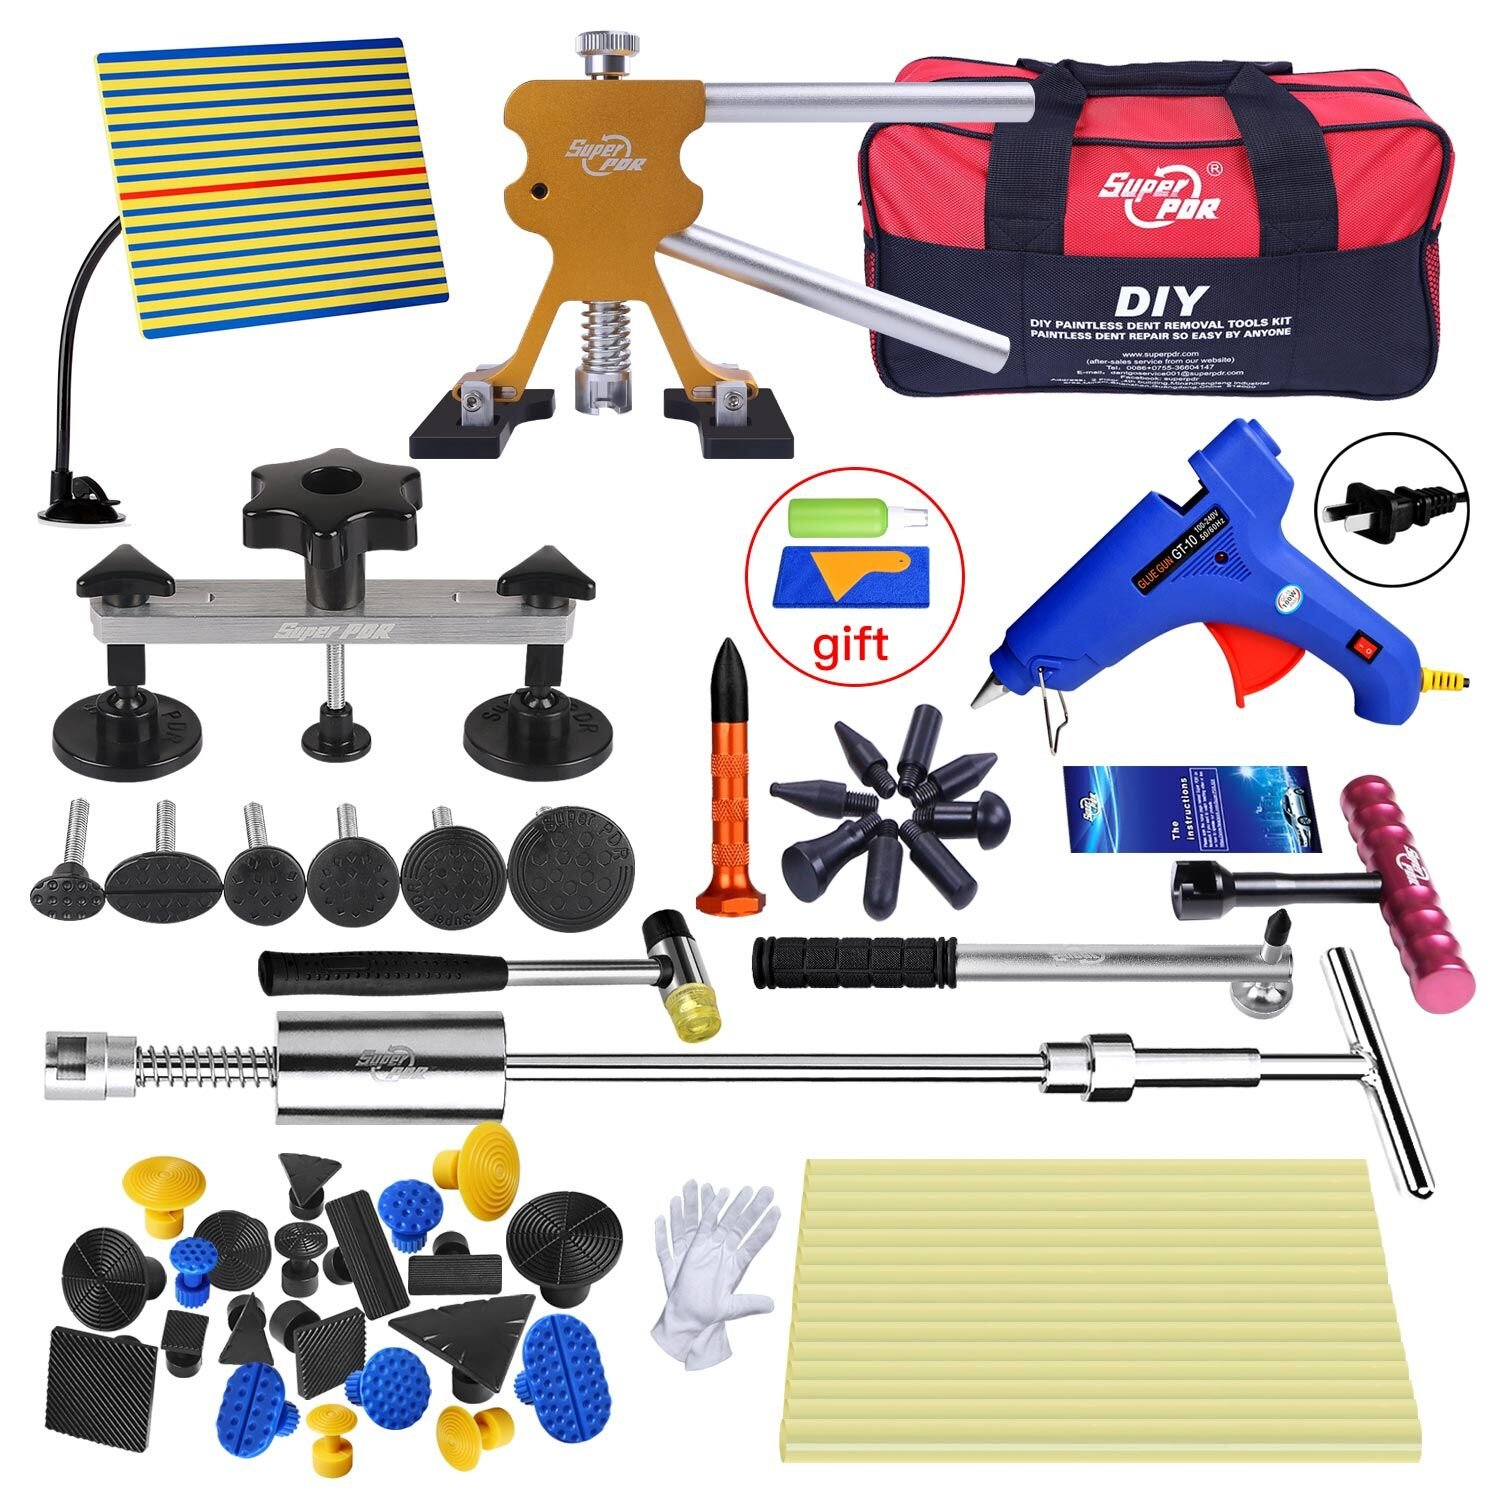 Fly5D Car Repair Tools with Bag Pops a Dent PDR Kit Gold Dent Lifter For Paintless Auto Dent Puller Car Body Auto Dent Removal Remover Tool Kits Equipment